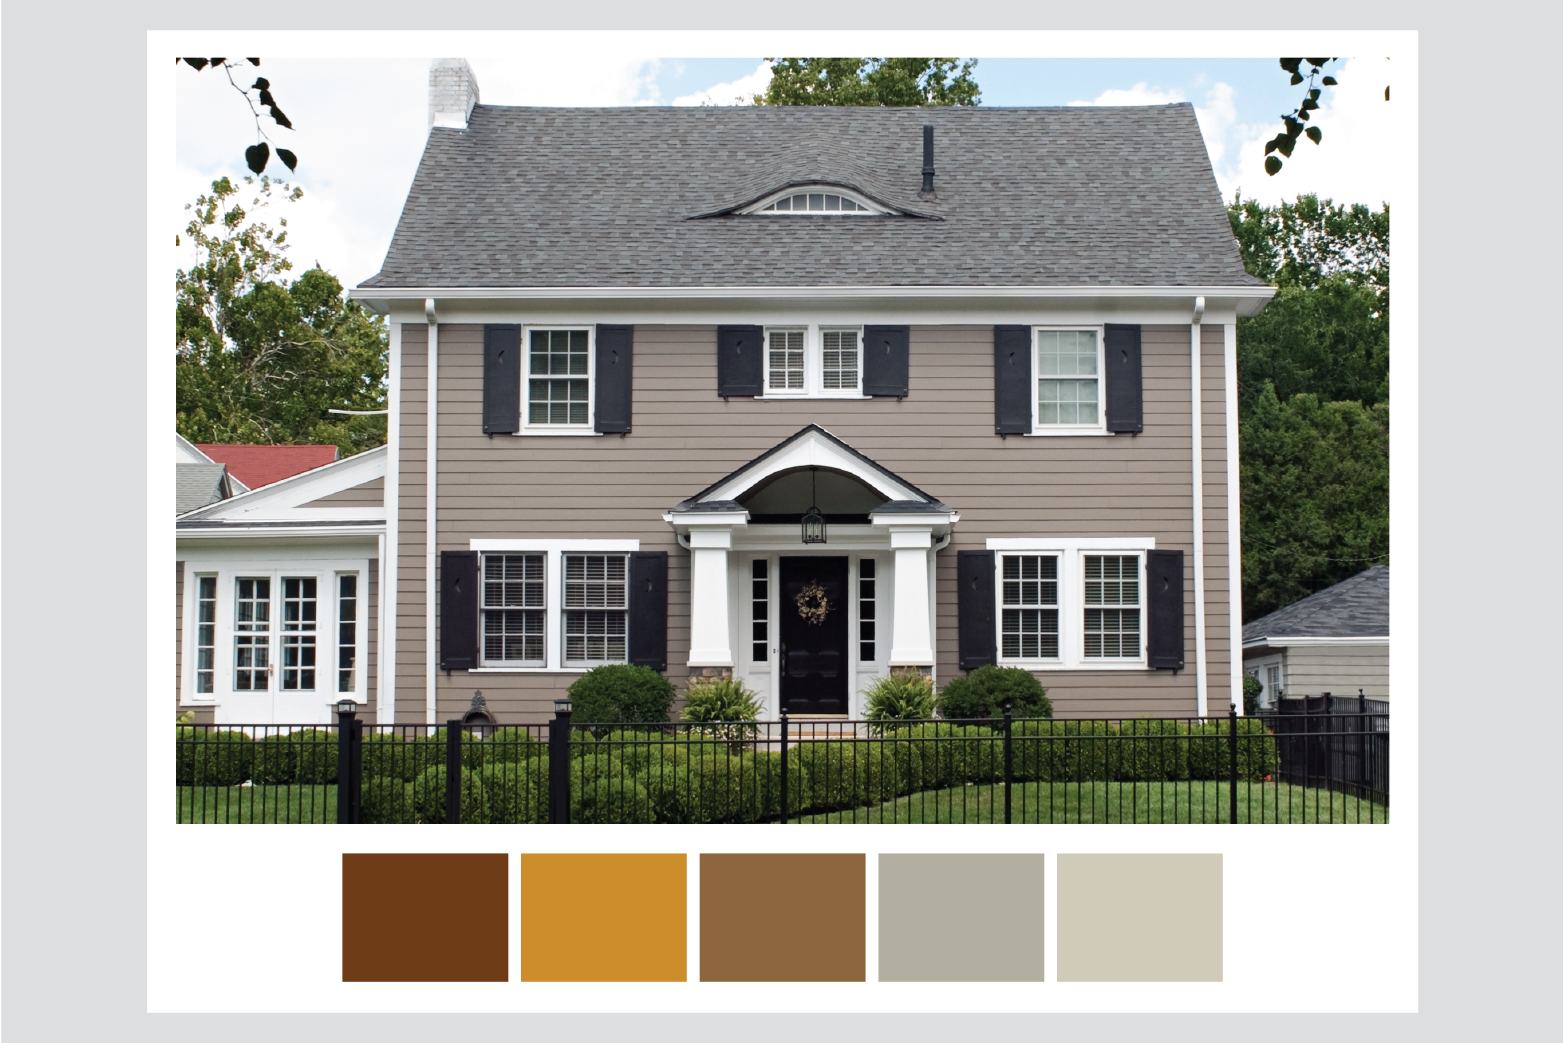 5+ Exterior House Paint Ideas For a Striking Home Design